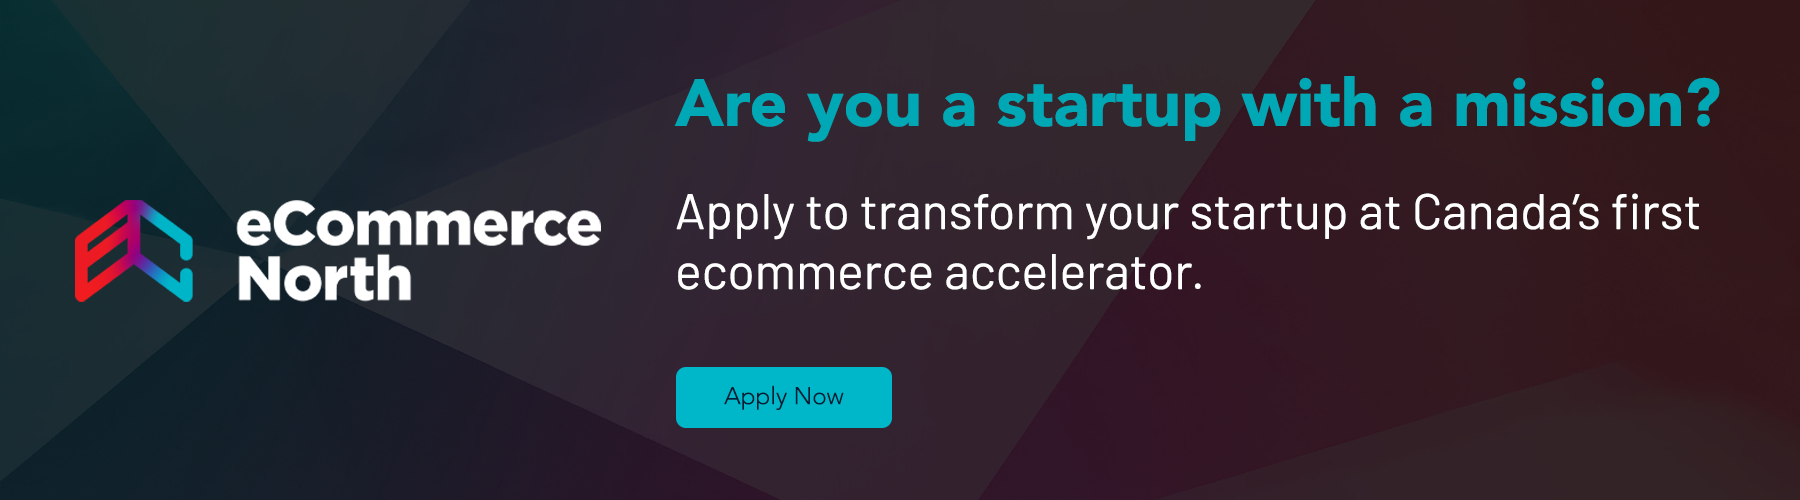 Are you a startup with a mission? Apply to transform your startup at Canada's first ecommerce accelerator.